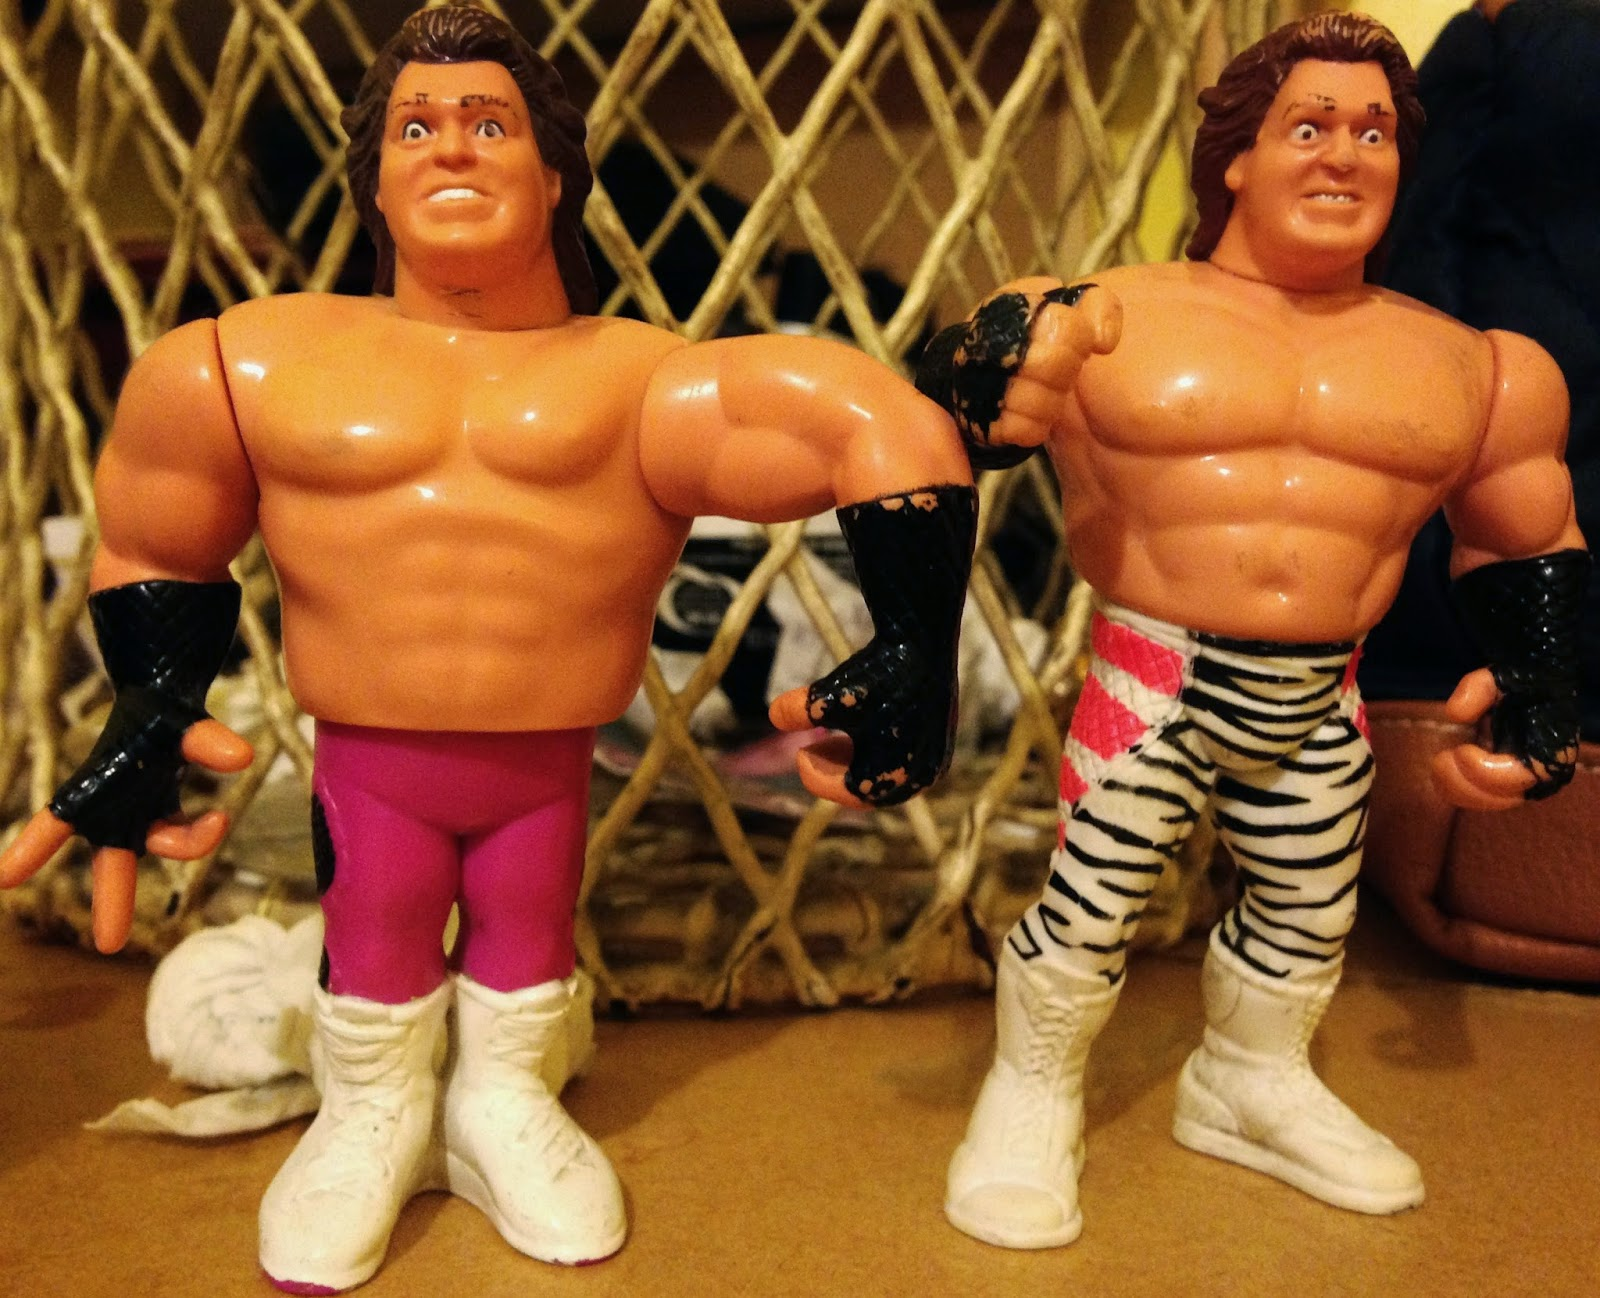 WWF Hasbro Figures - Two Brutus 'The Barber' Beefcake